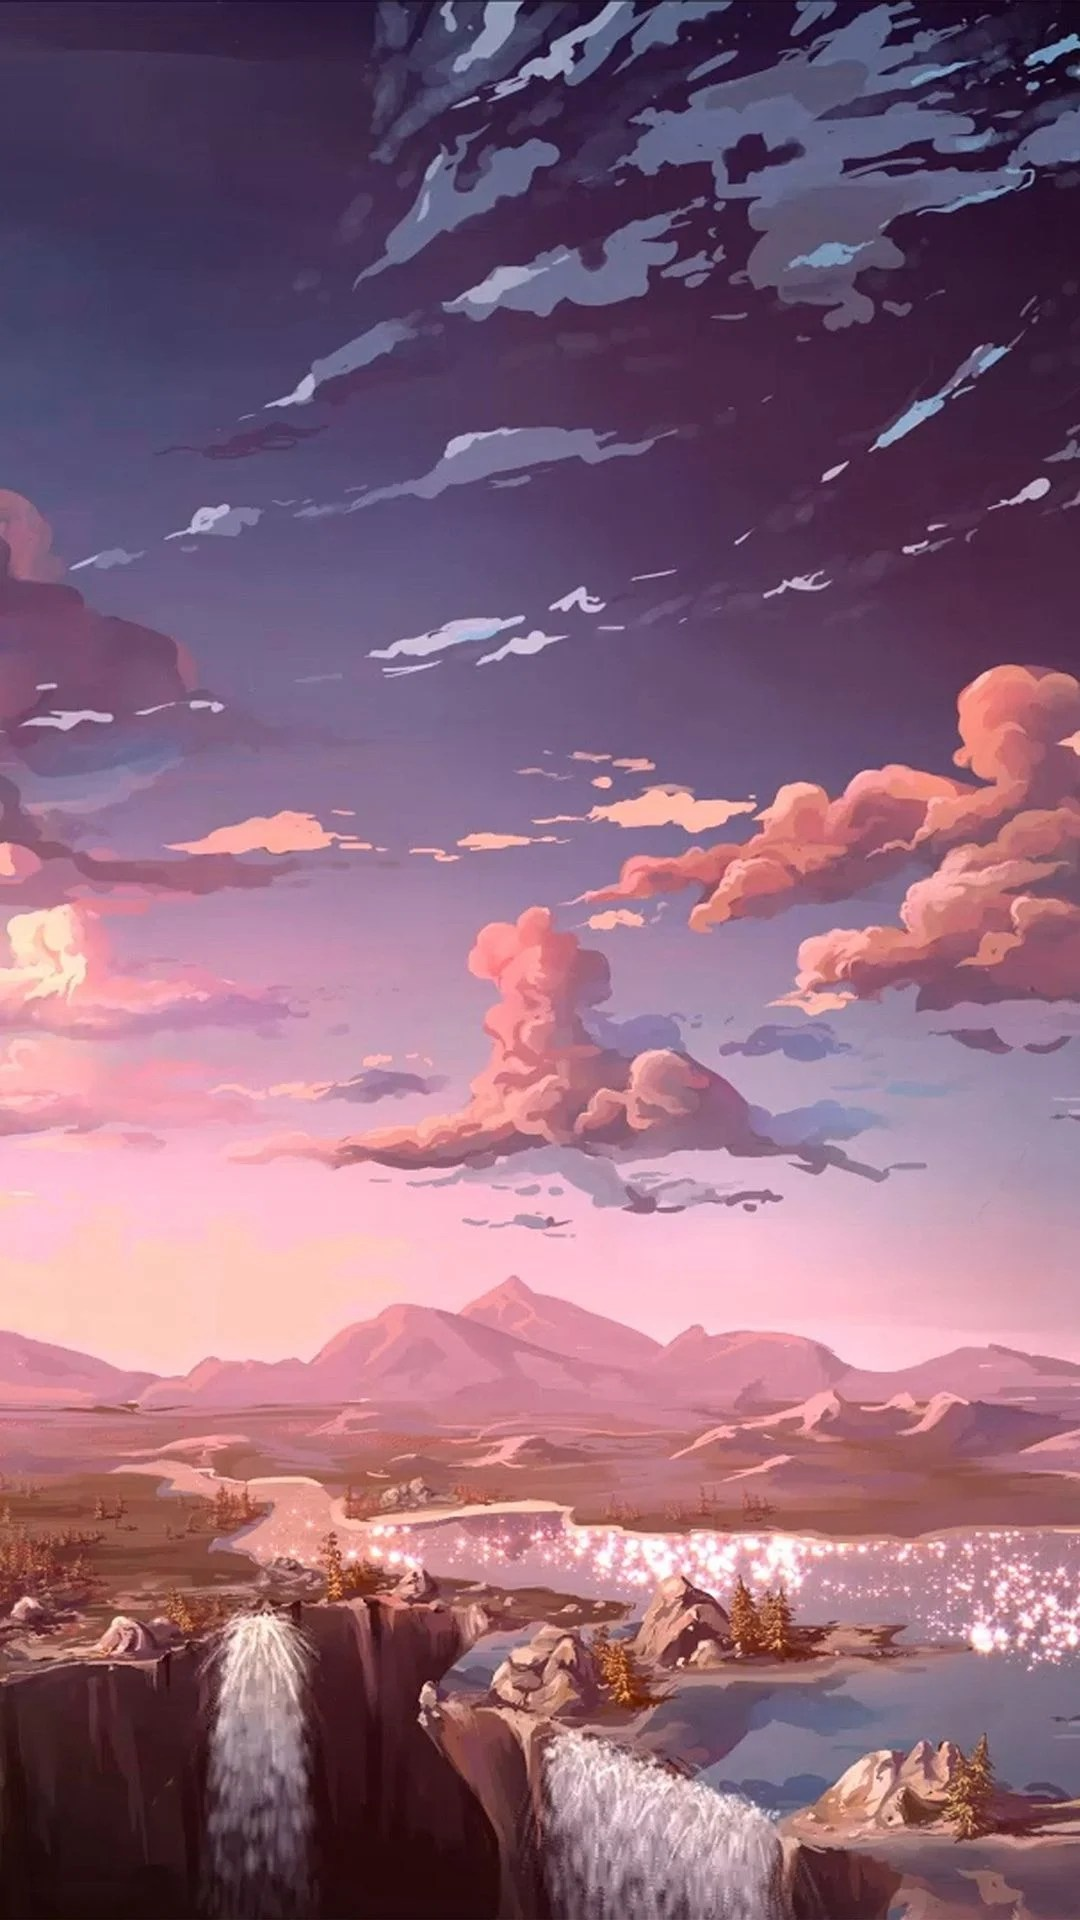 Anime Background Moving : anime, background, moving, Pastel, Aesthetic, Anime, Wallpapers, Backgrounds, WallpaperAccess